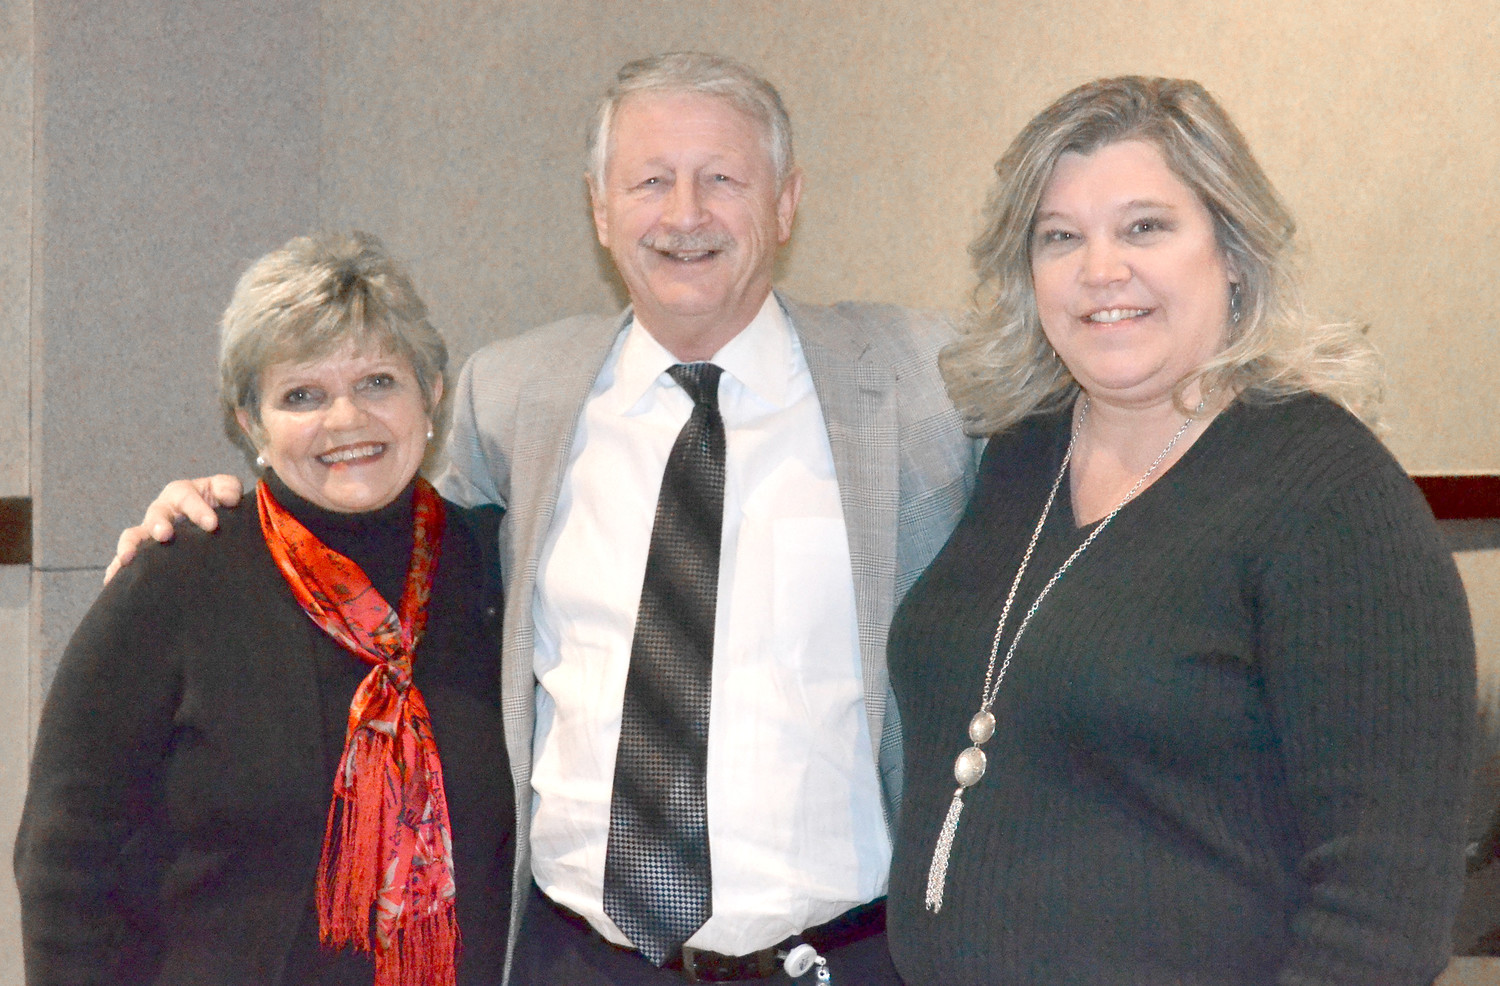 RETIRING 911 DIRECTOR Joe Wilson is flanked by his wife, Connie, left, and interim Director Sherry Maxfield.